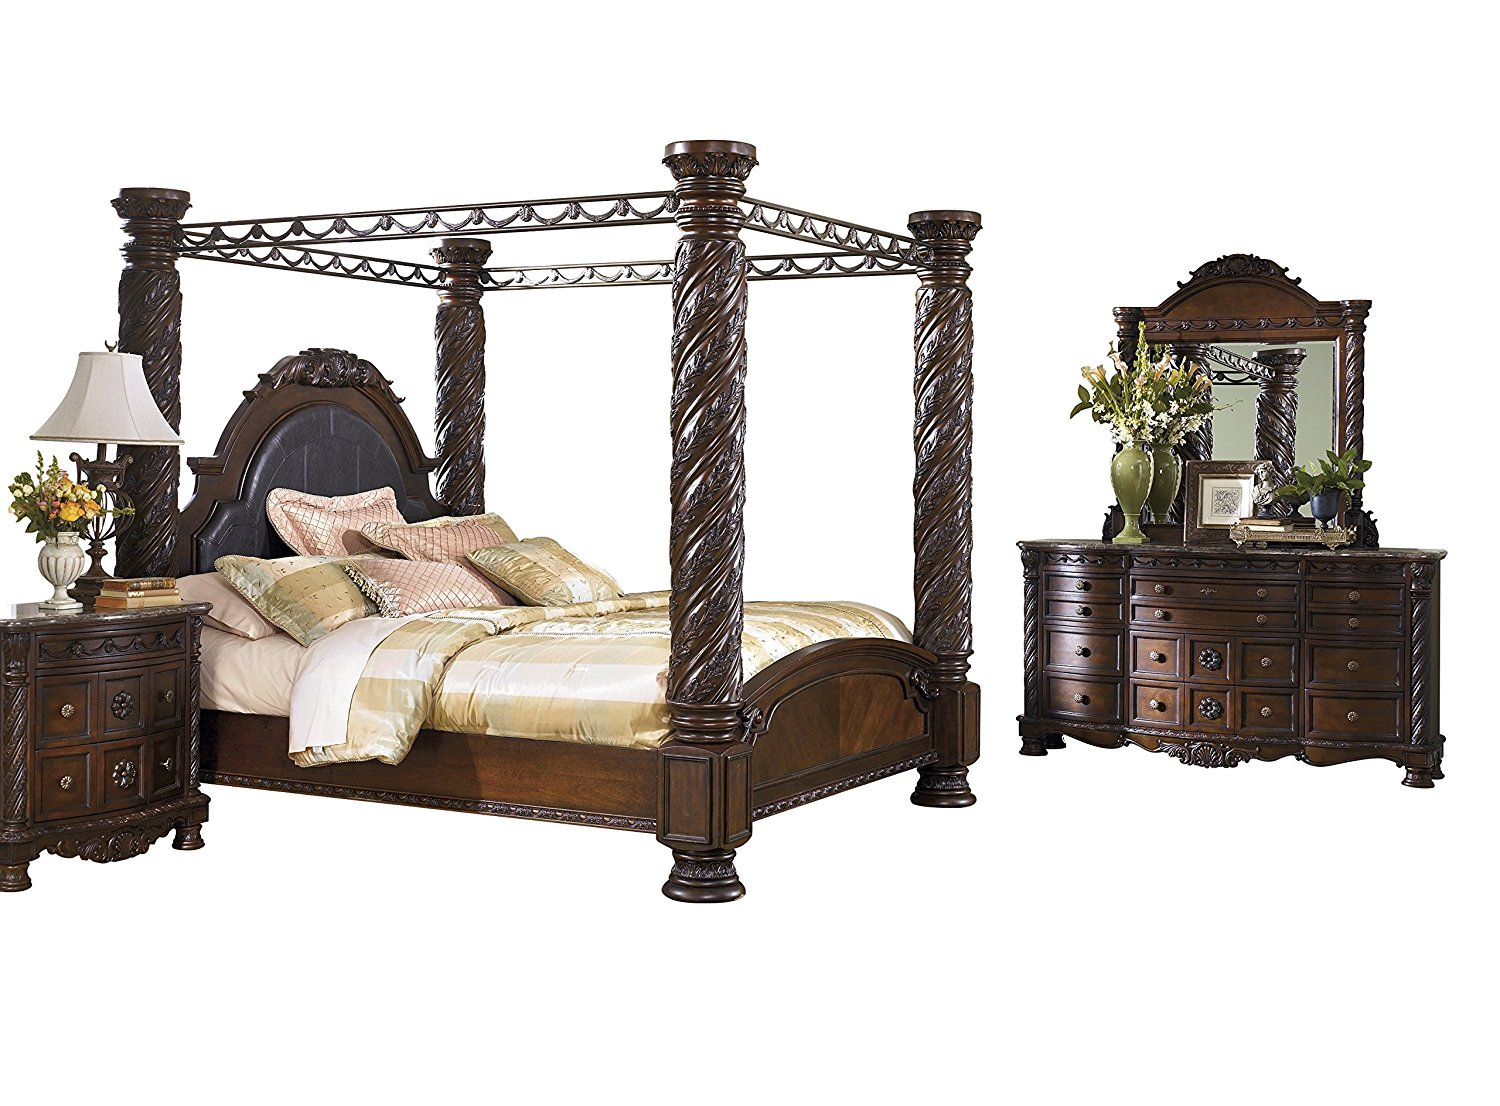 Cheap 4 Poster Bed King, find 4 Poster Bed King deals on ...